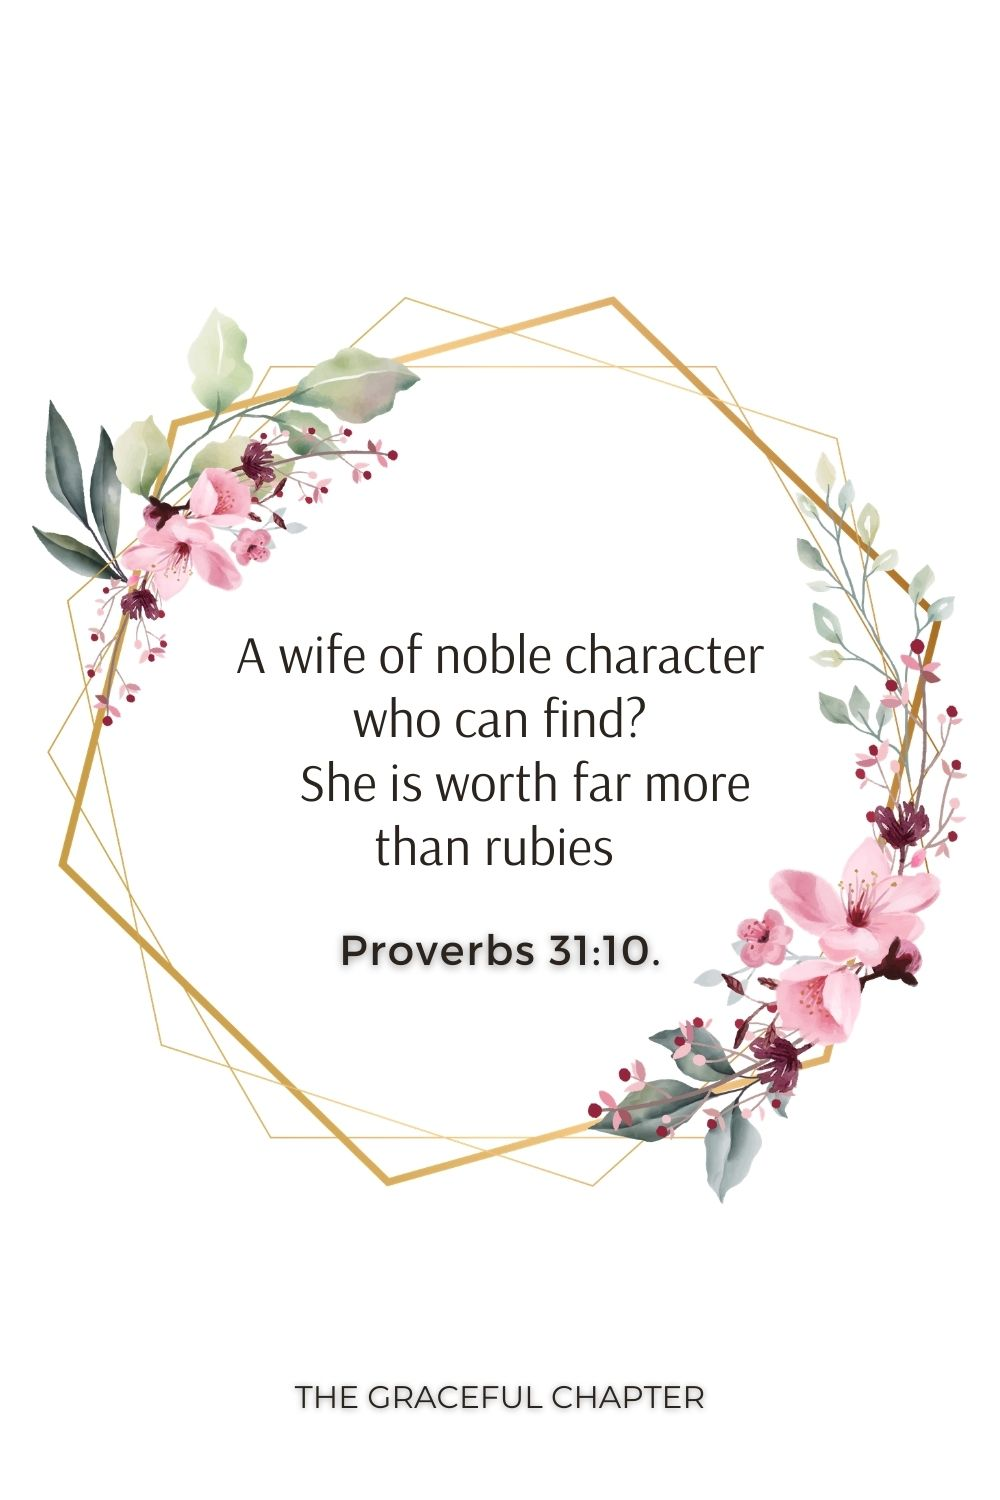 A wife of noble character who can find?     She is worth far more than rubies  Proverbs 31:10.